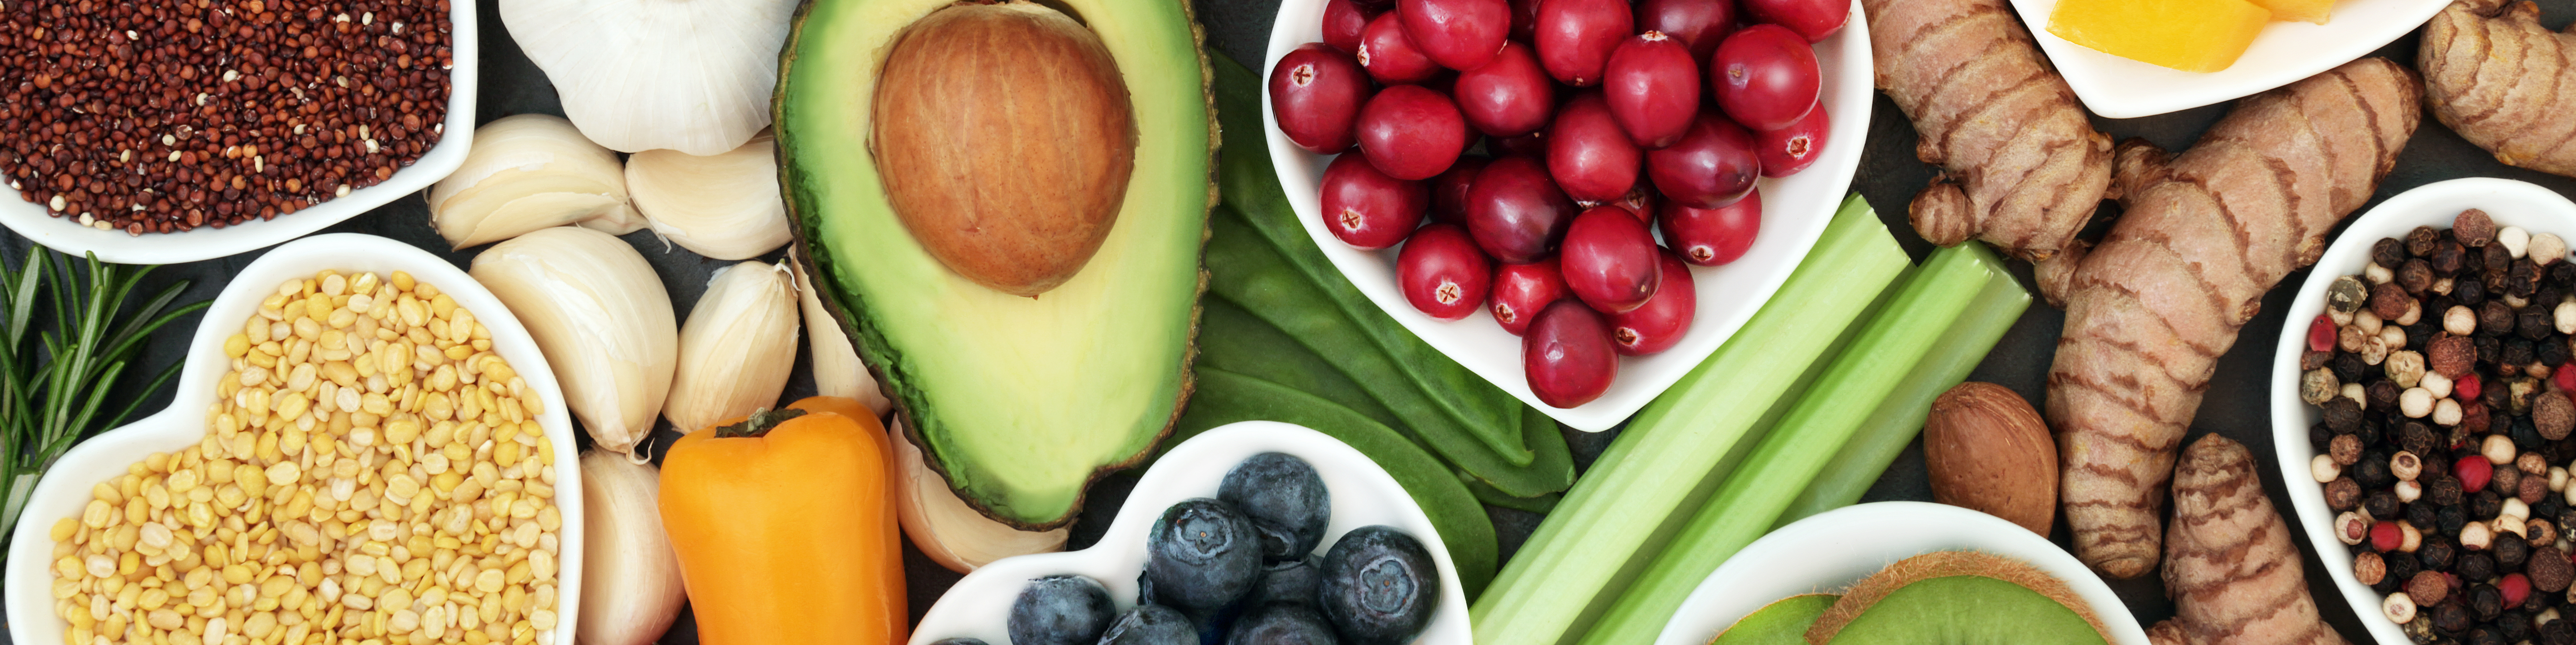 Nutritional Counseling Whole Health Center Houston Integrative